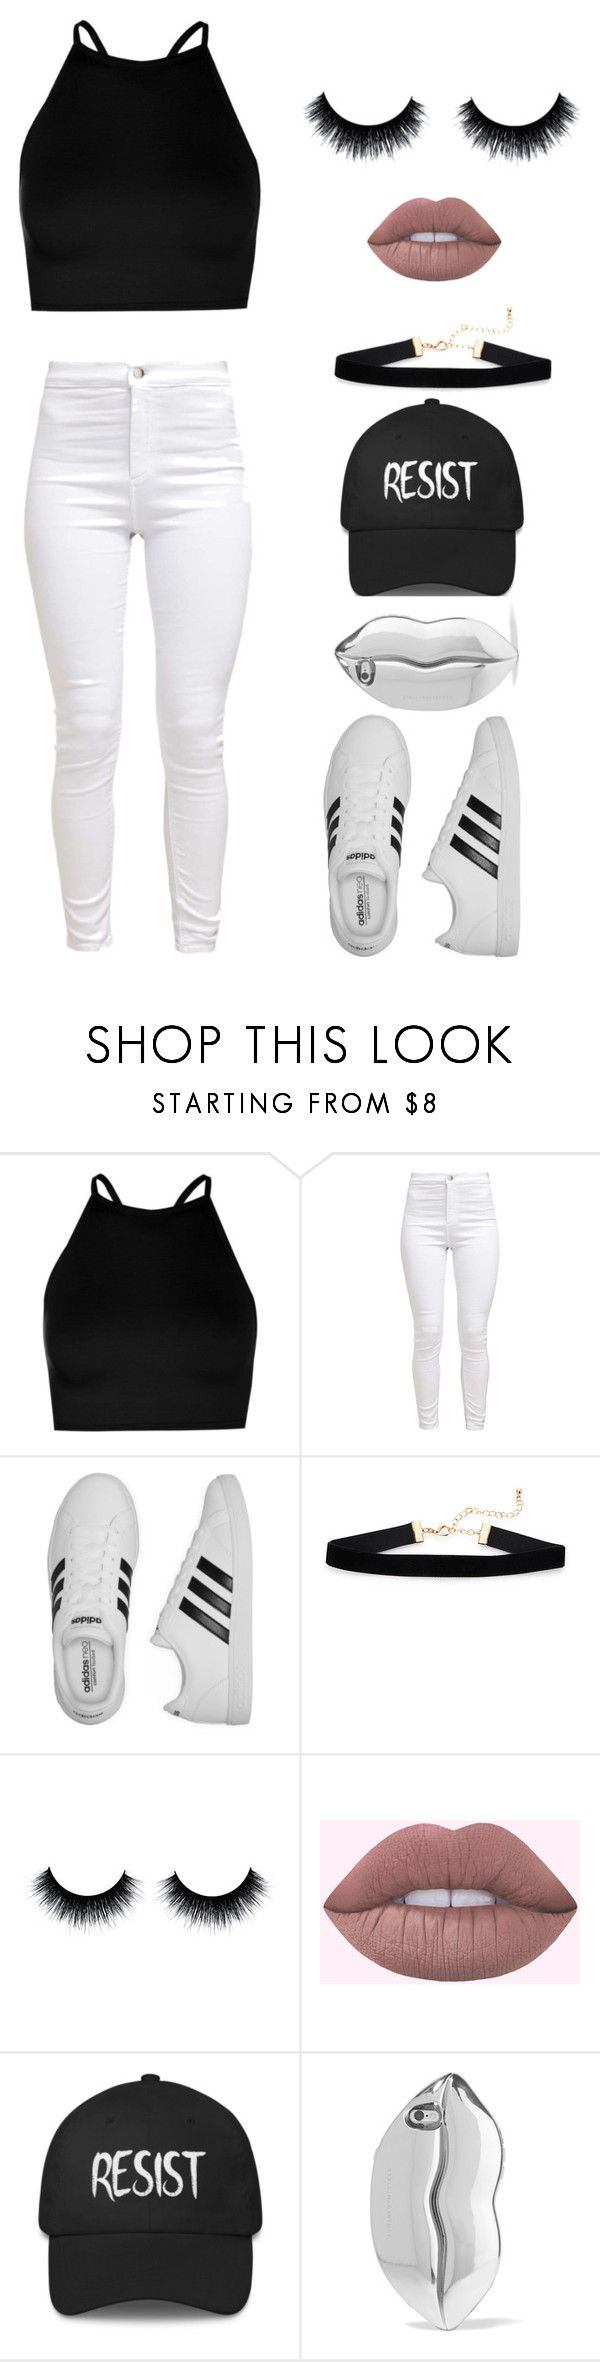 """Resist"" by lakisha-ii ❤ liked on Polyvore featuring Boohoo, adidas and STELLA McCARTNEY"